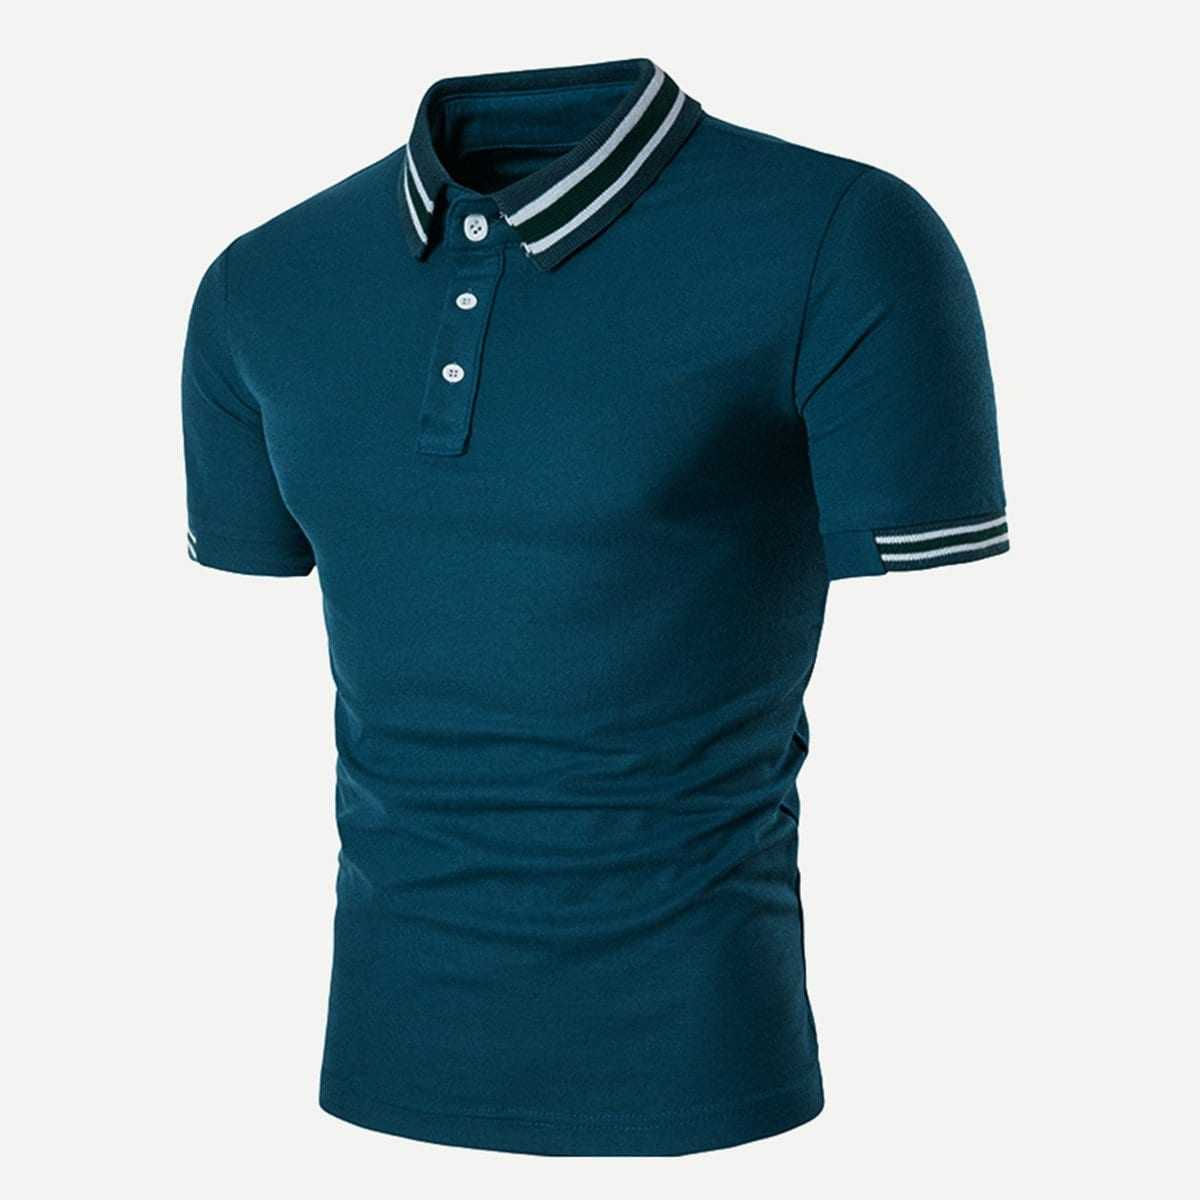 Guys Striped Detail Polo Shirt in Blue by ROMWE on GOOFASH